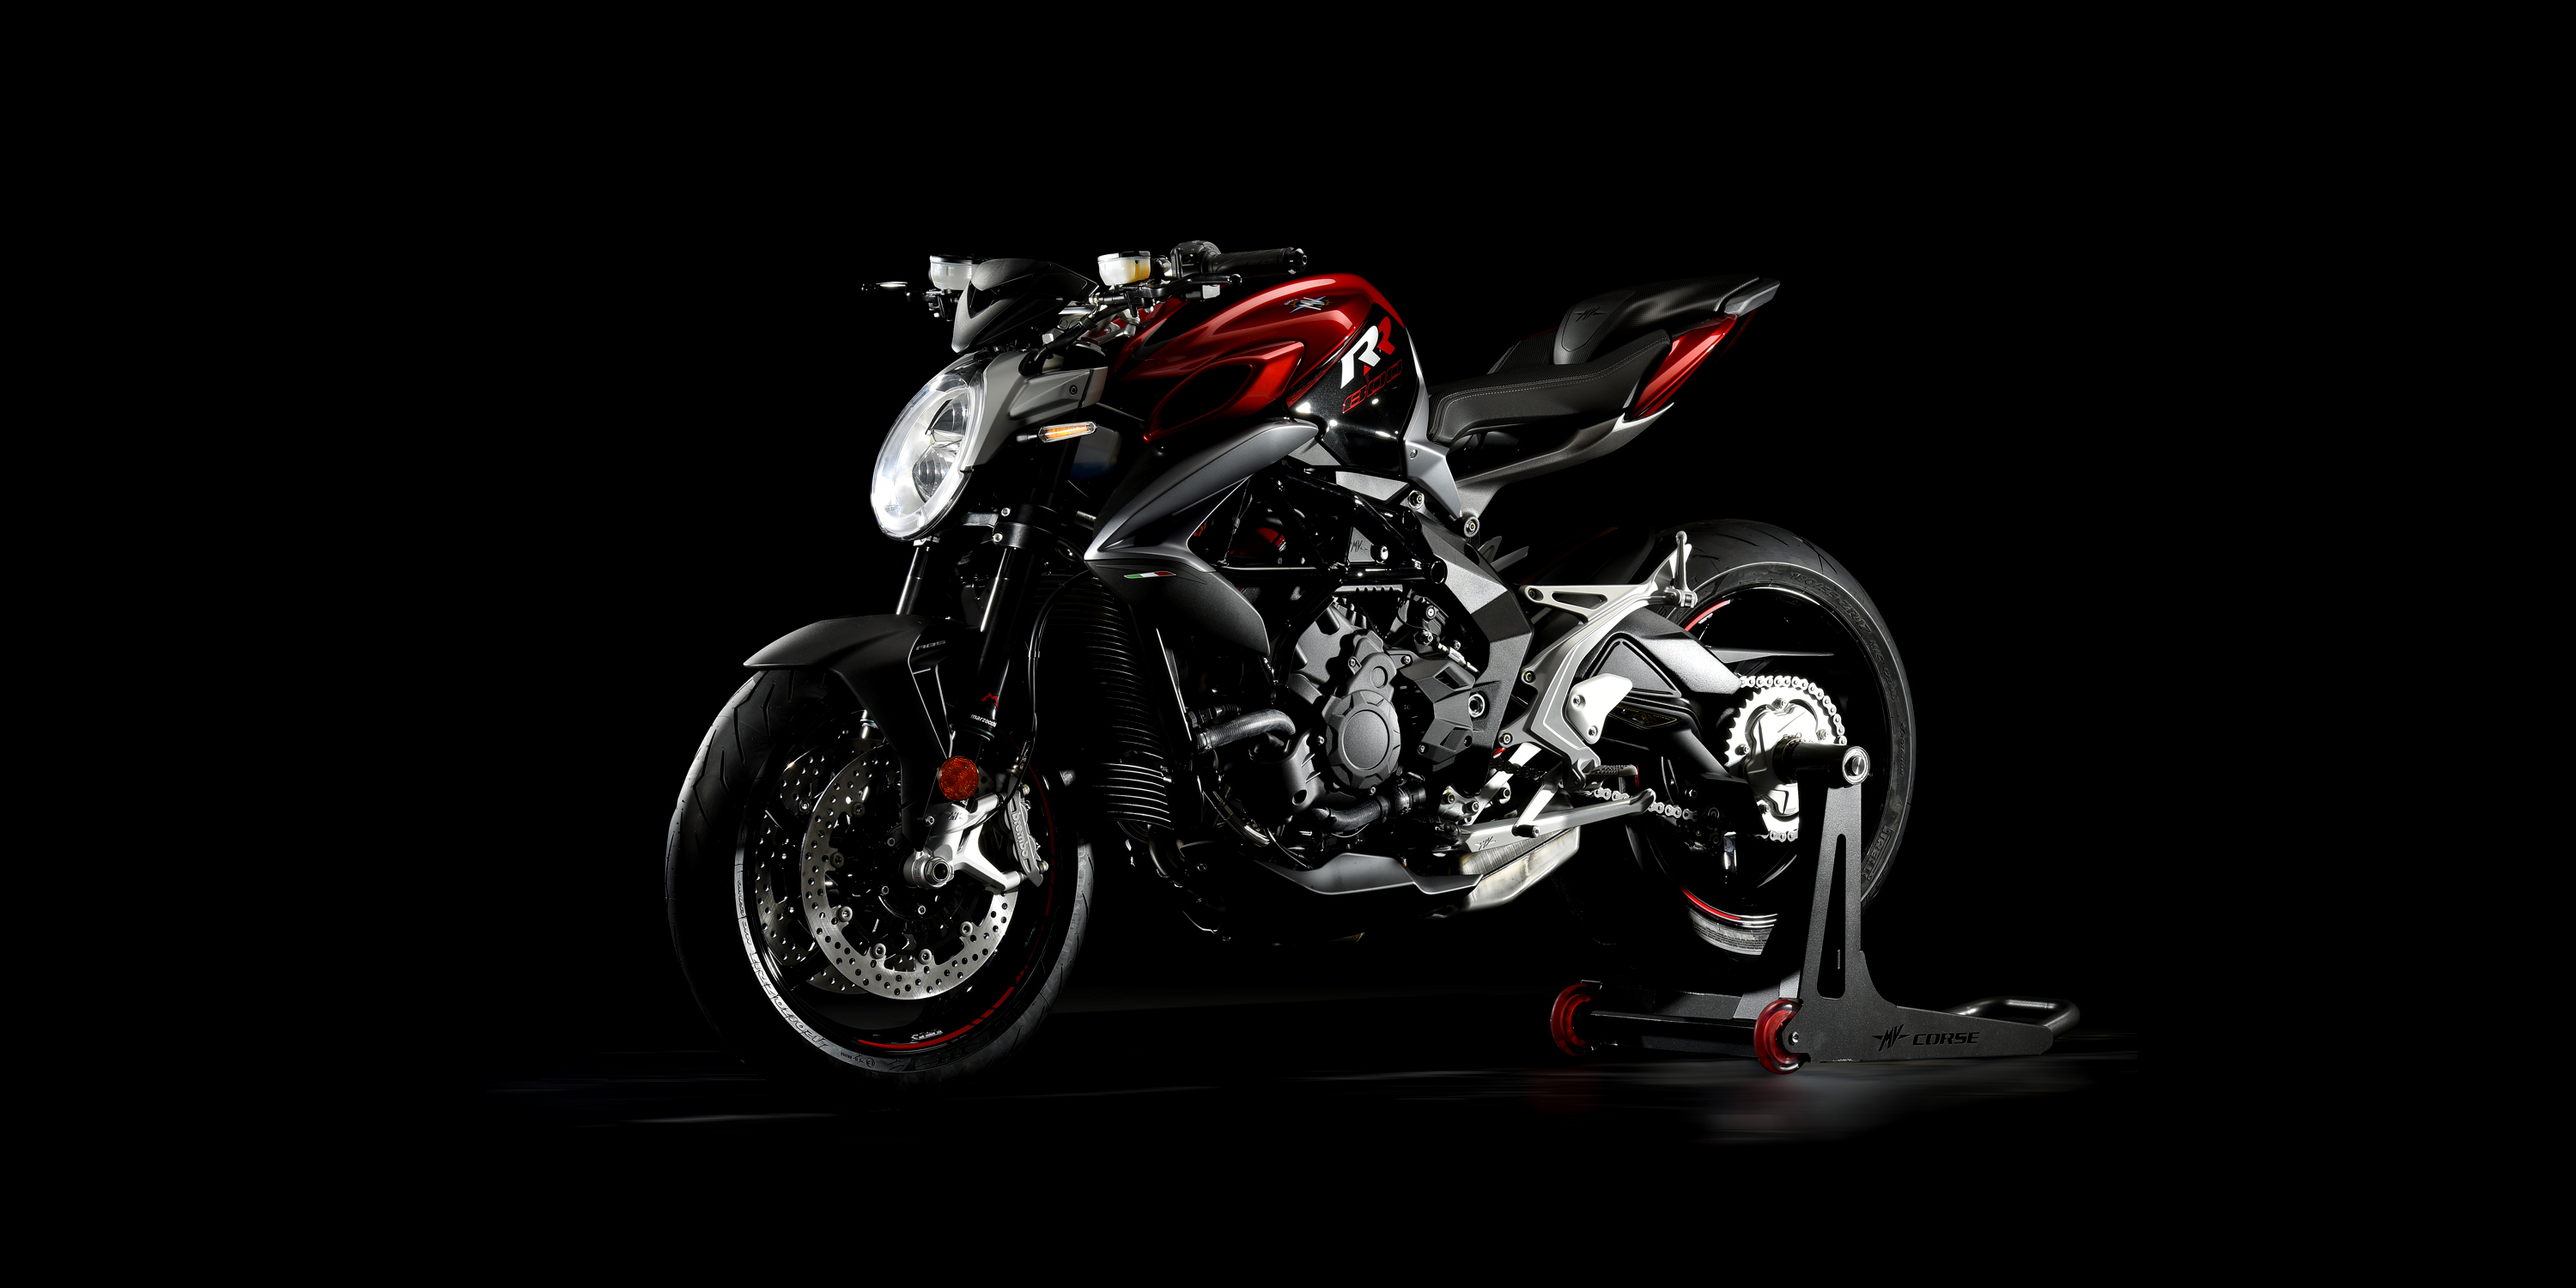 mv agusta brutale 800 rr updated for 2017 at eicma autoevolution. Black Bedroom Furniture Sets. Home Design Ideas